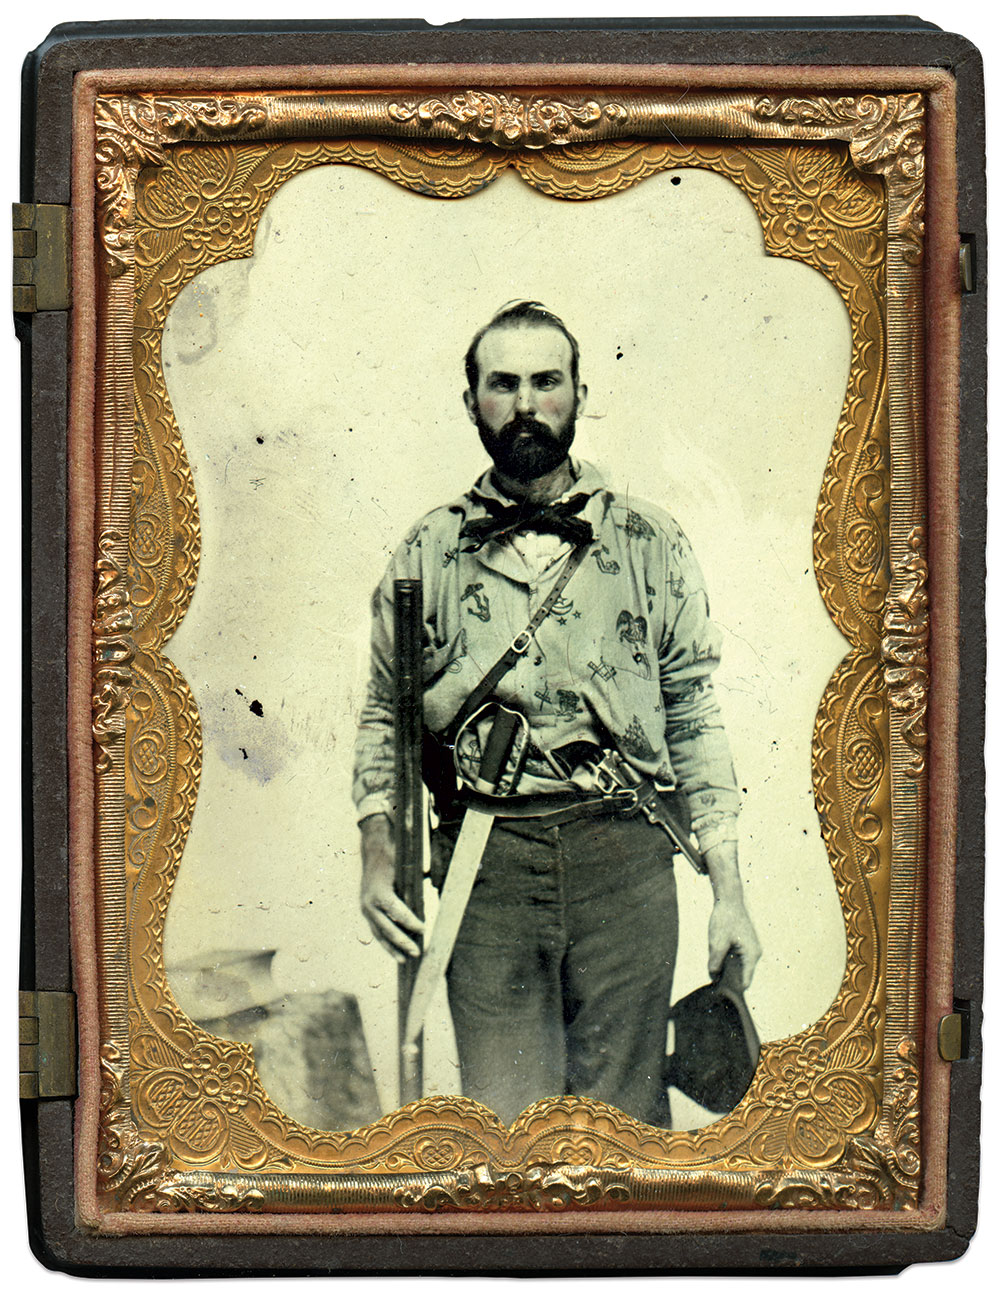 Quarter-plate ambrotype by an anonymous photographer. Kevin Canberg Collection.